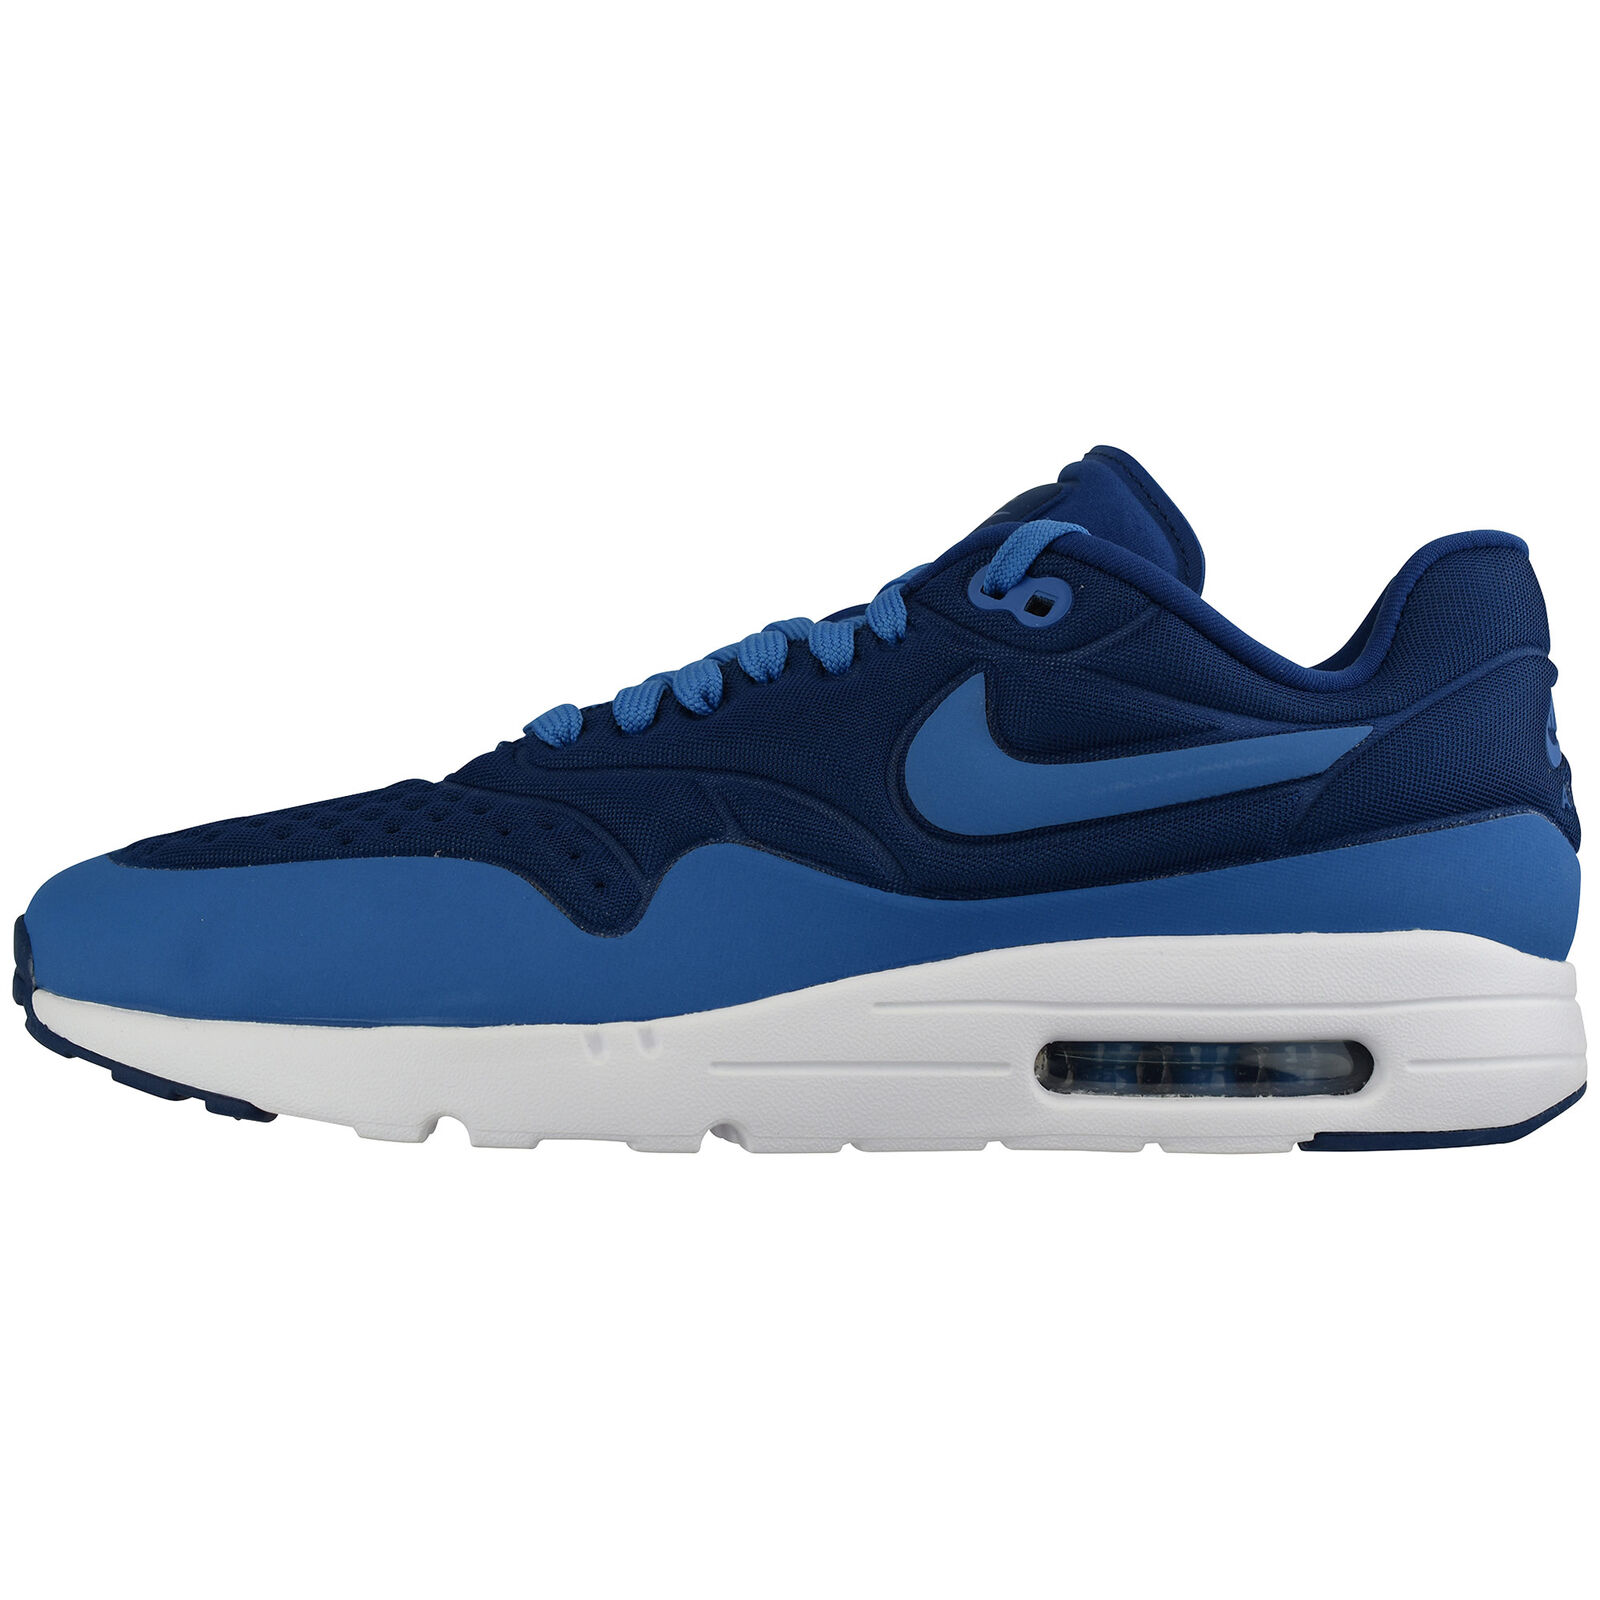 c38185fe25 Air Max Bw Ultra Se 845038-400 Lifestyle shoes Running Zapatillas Nike  ncetbs1420-Athletic Shoes